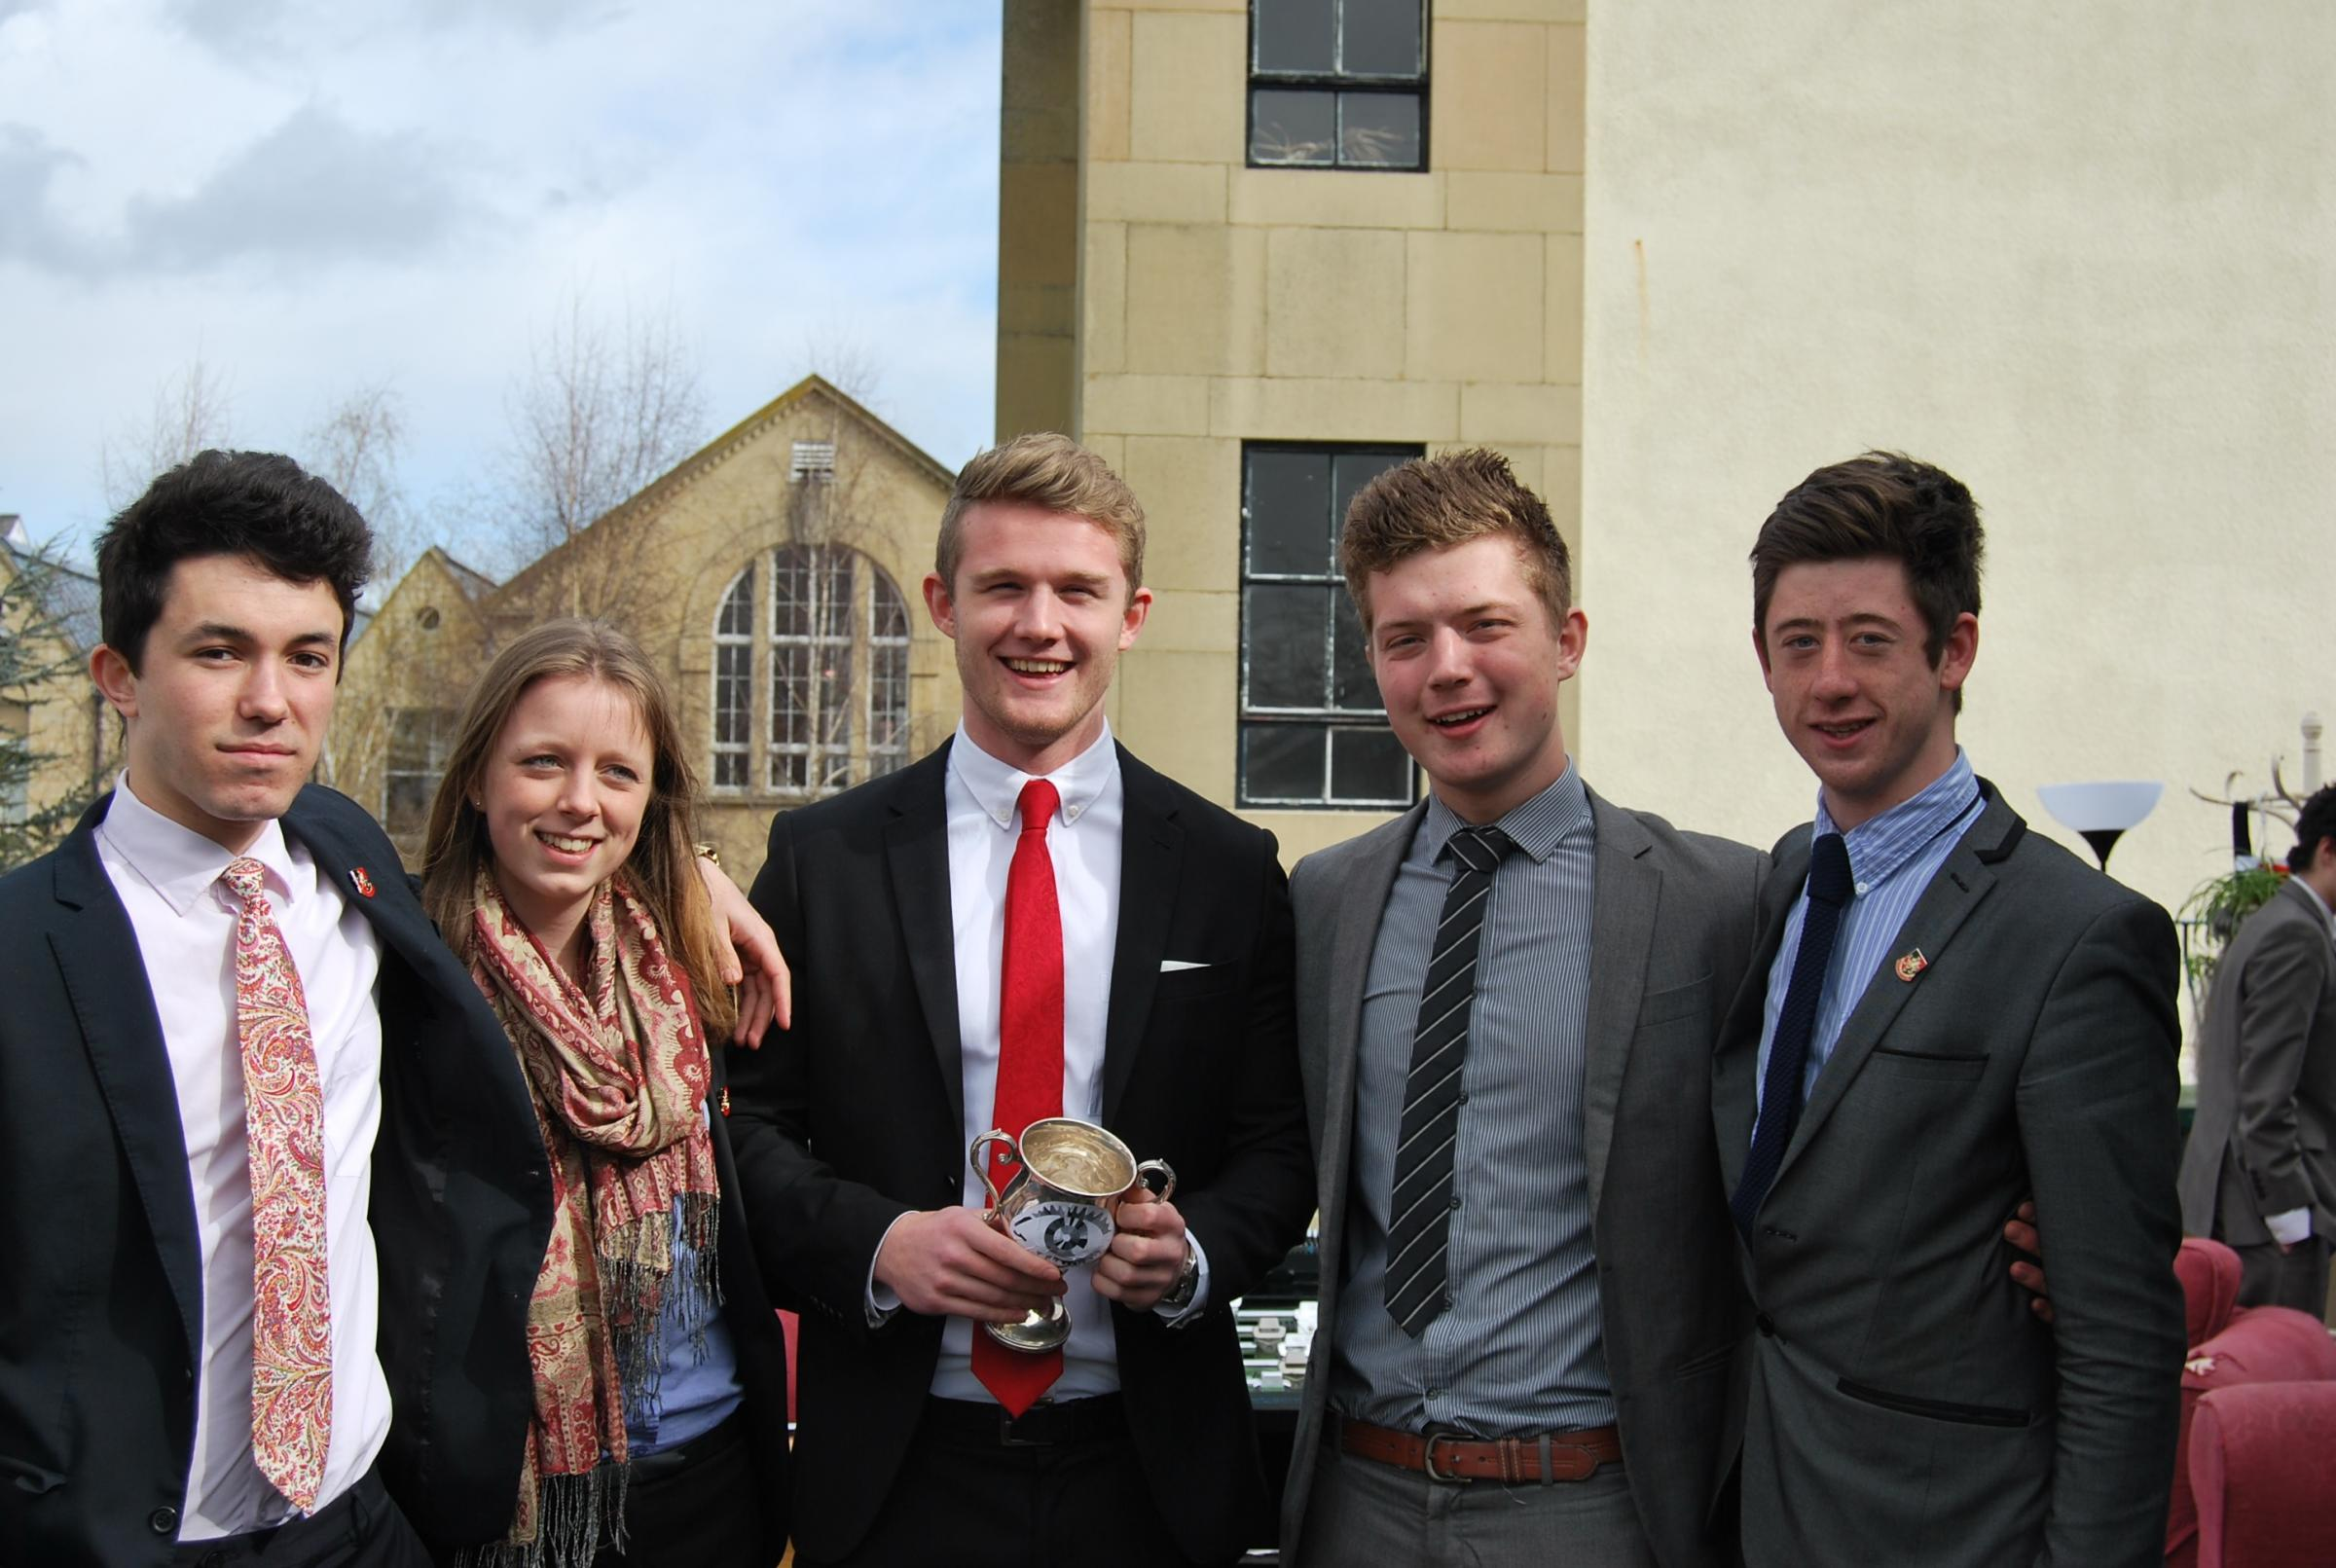 The five finalists in the Wycliffe College Big Brother event held to raise money for former student Rob Camm. (l-r) Kyrs Fishwick, Carrii Elliott, Charlie Hitchcock, Joe Dunne and Jacob Stevenson.